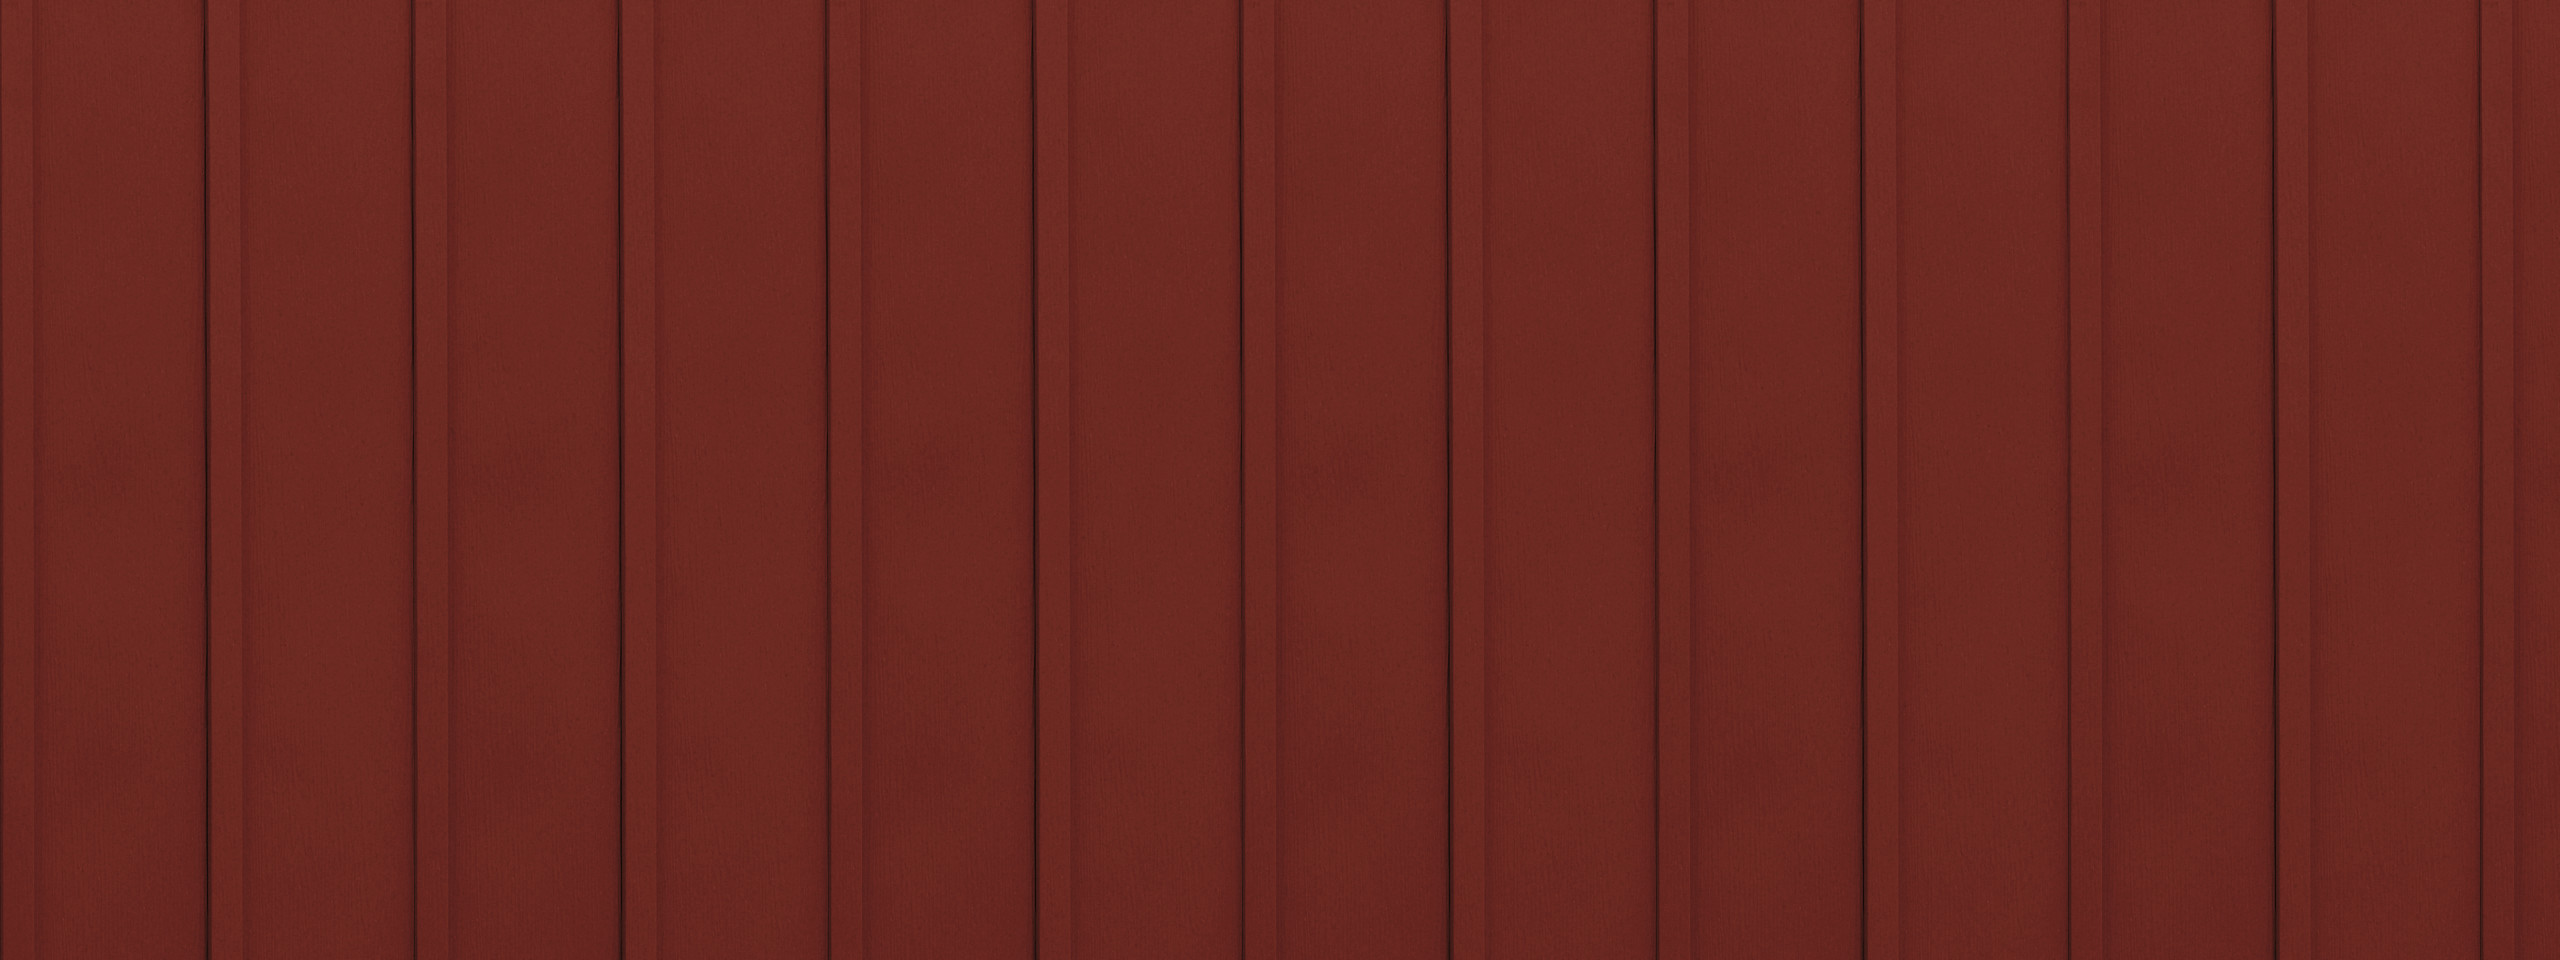 Entex vertical classic red board and batten steel siding